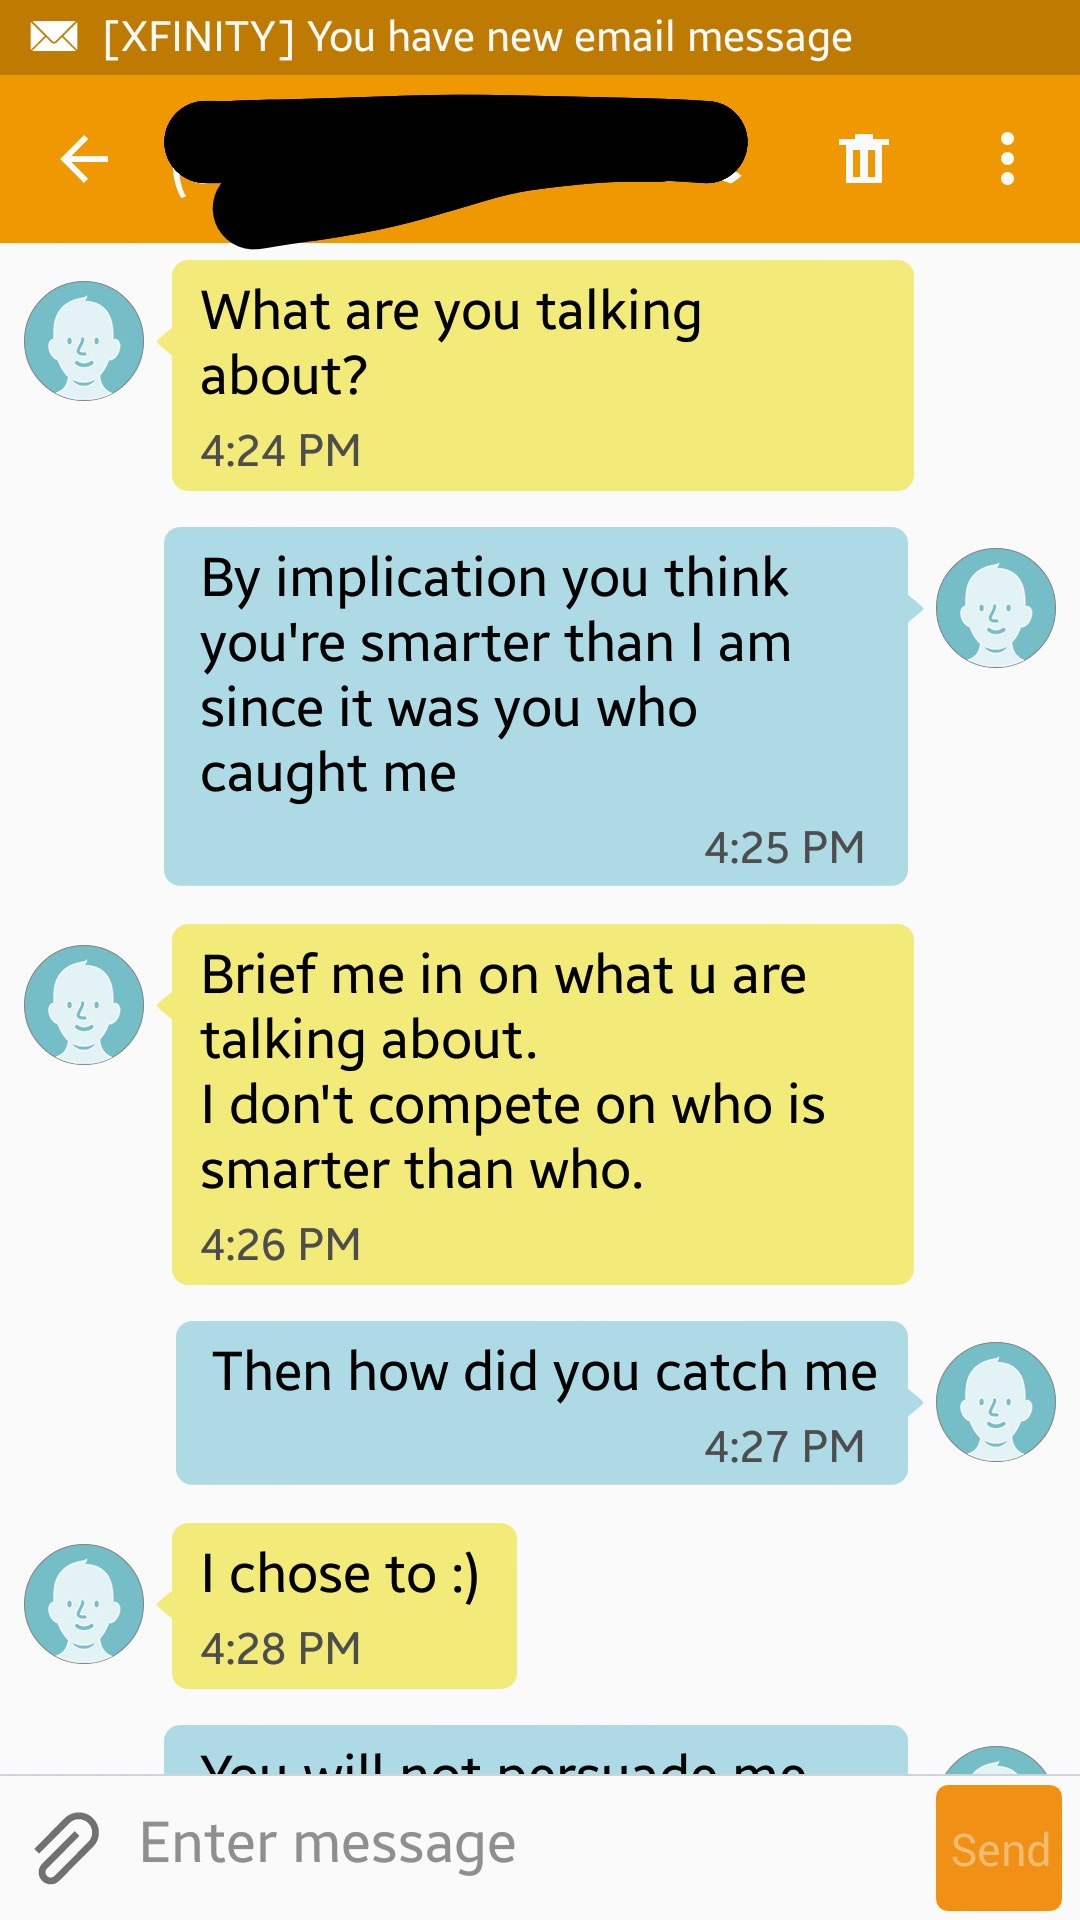 Woman gives thirsty dude her brother's number. Brother trolls dude with Hannibal Lecter quotes.